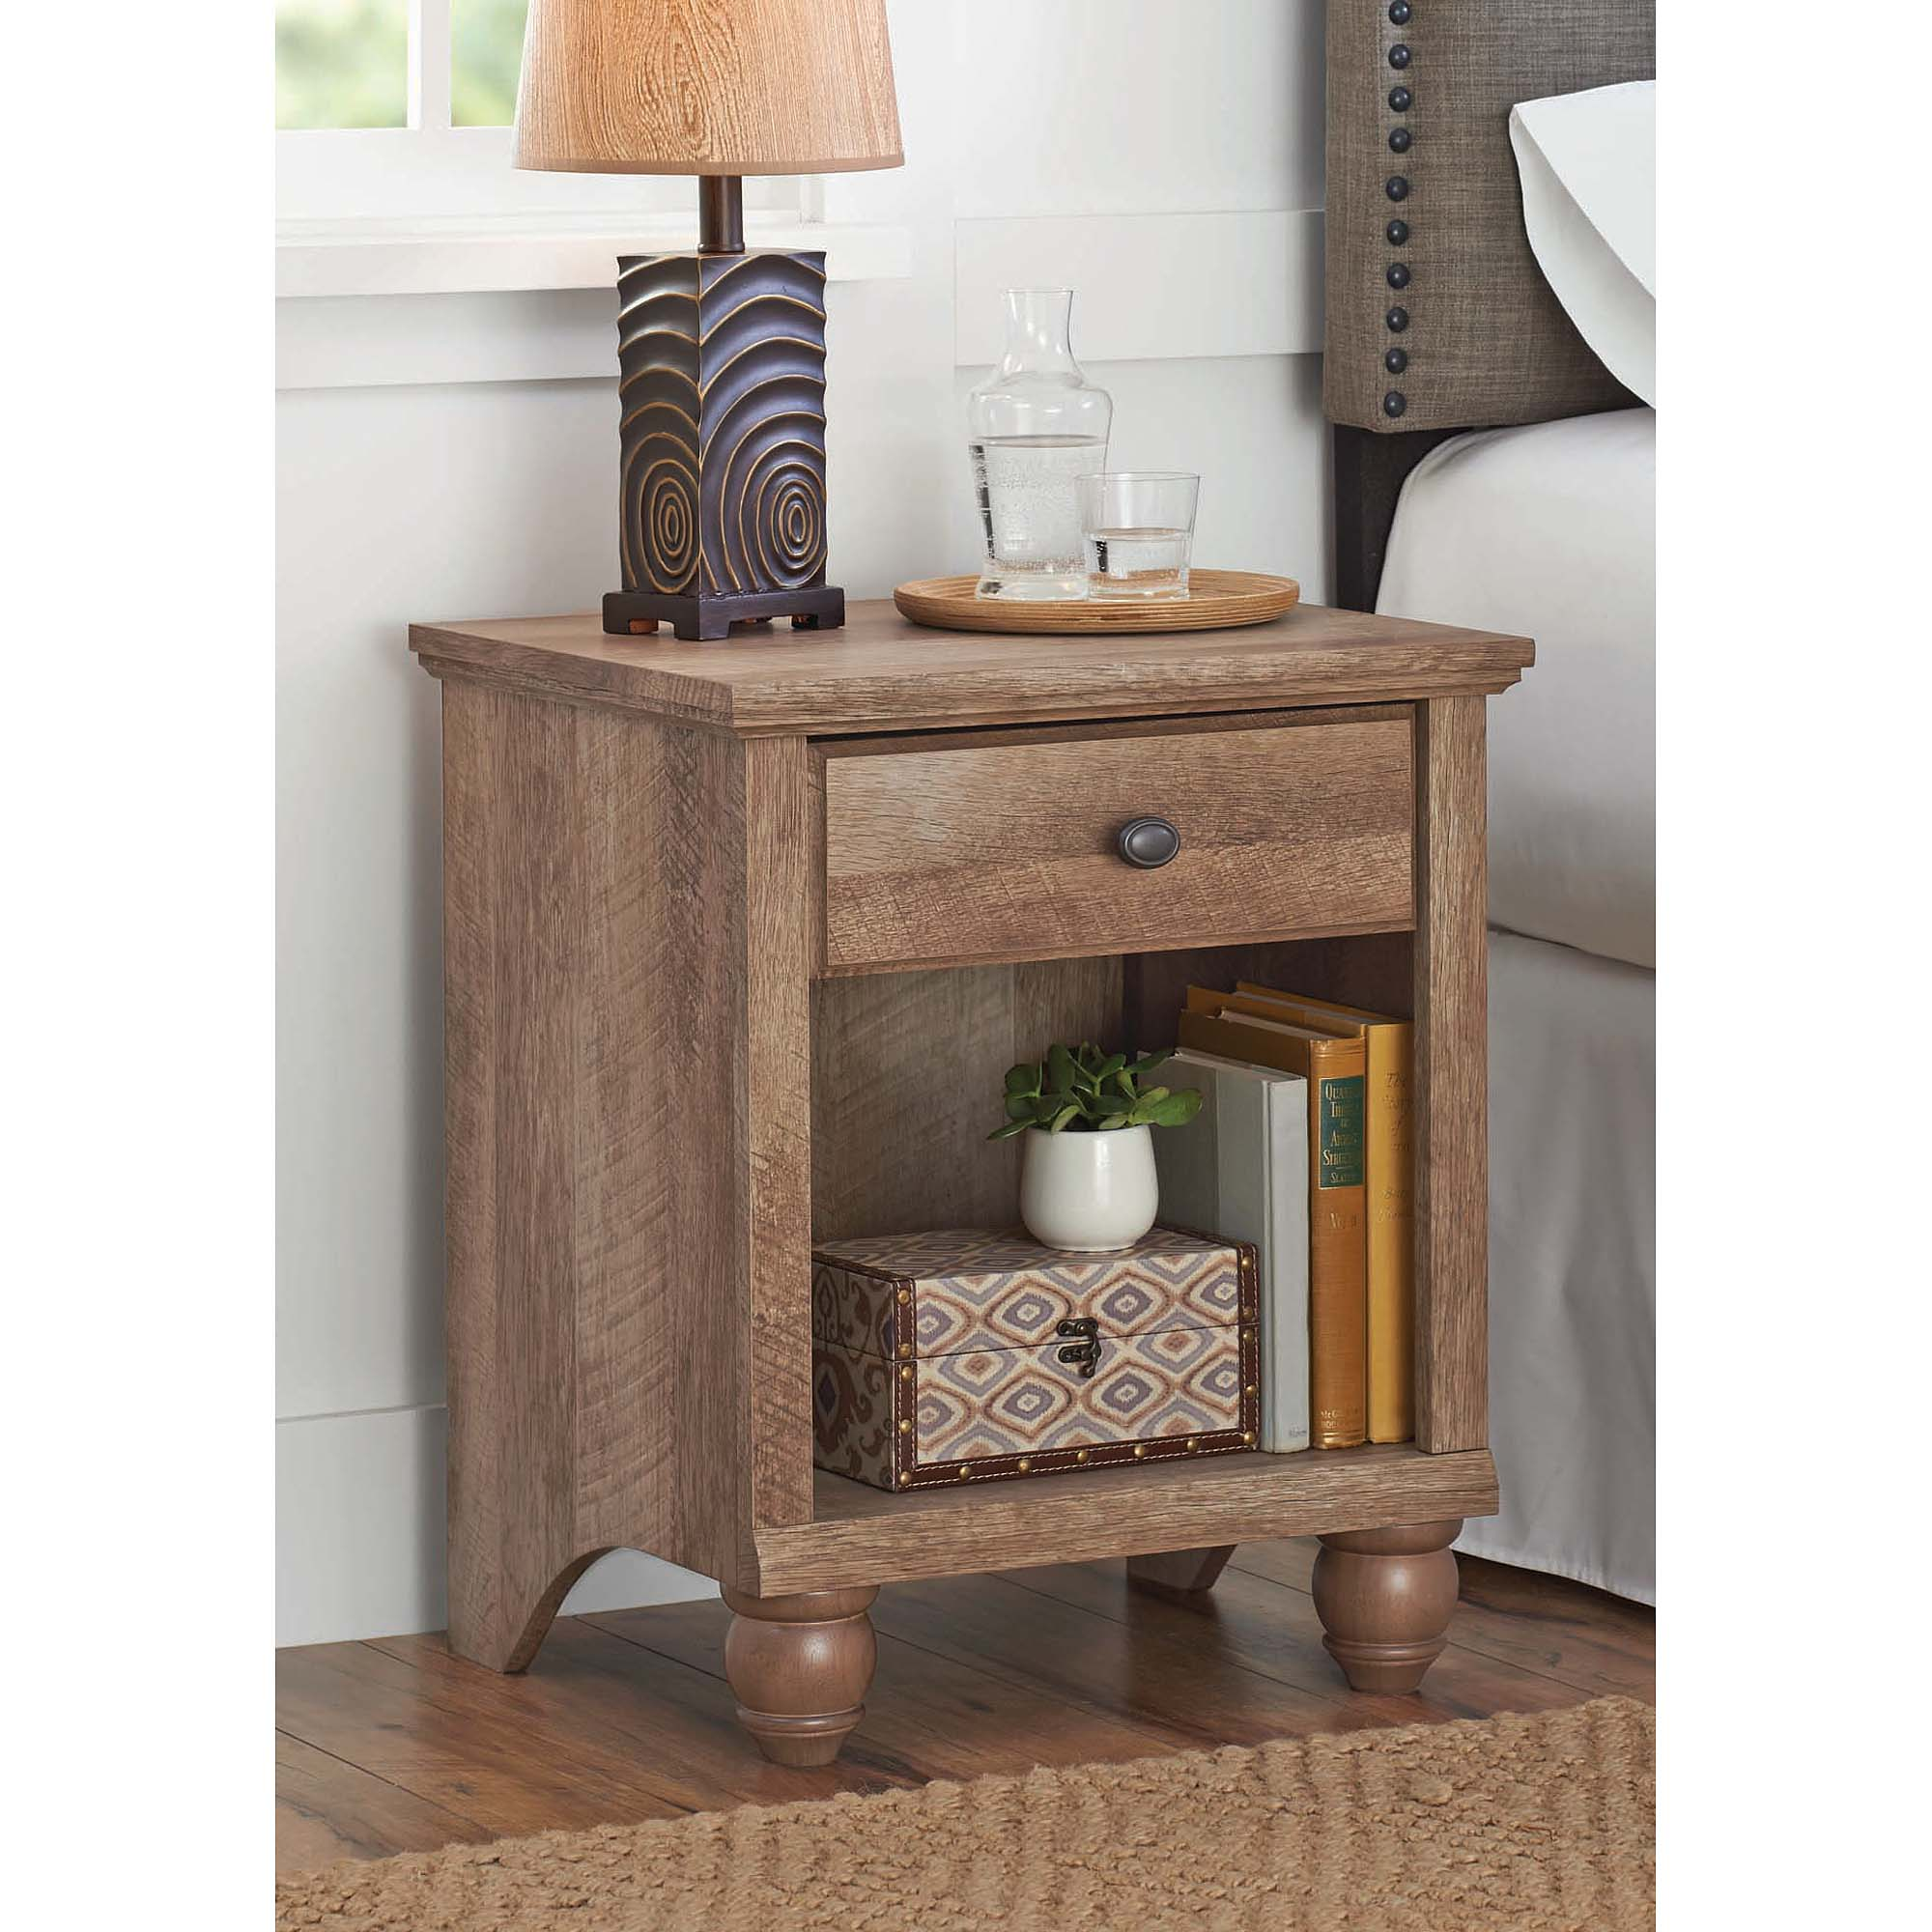 rustic wood end table barn farm living room side stand accent details tiny corner bench dining ikea party cloth glass perspex coffee tables vanity acrylic trunk threshold seal